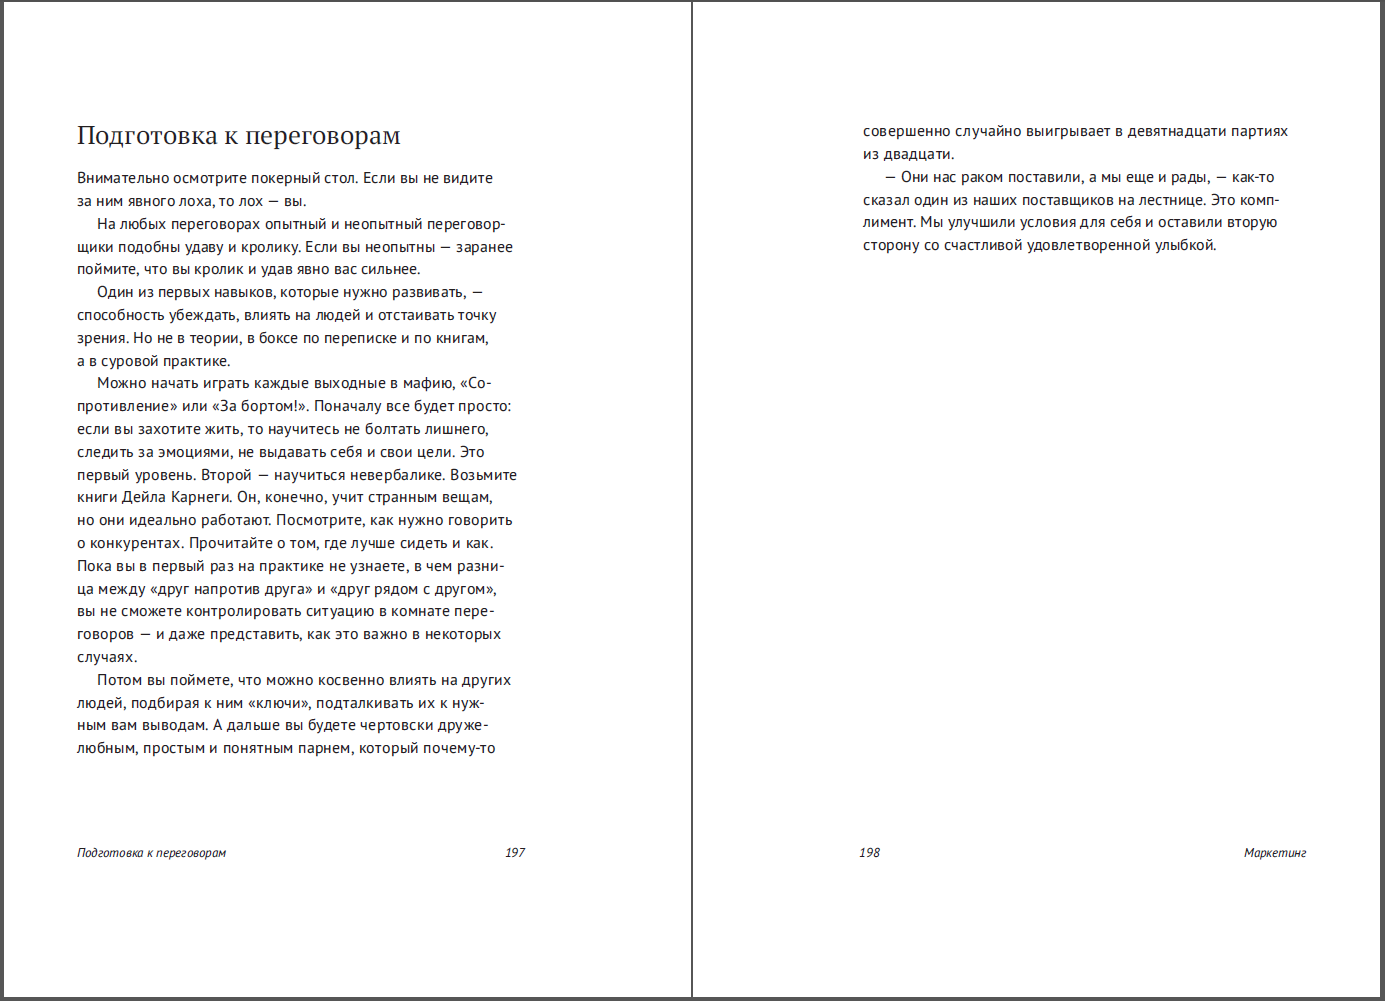 As I wrote and published the book based on the posts from Habr